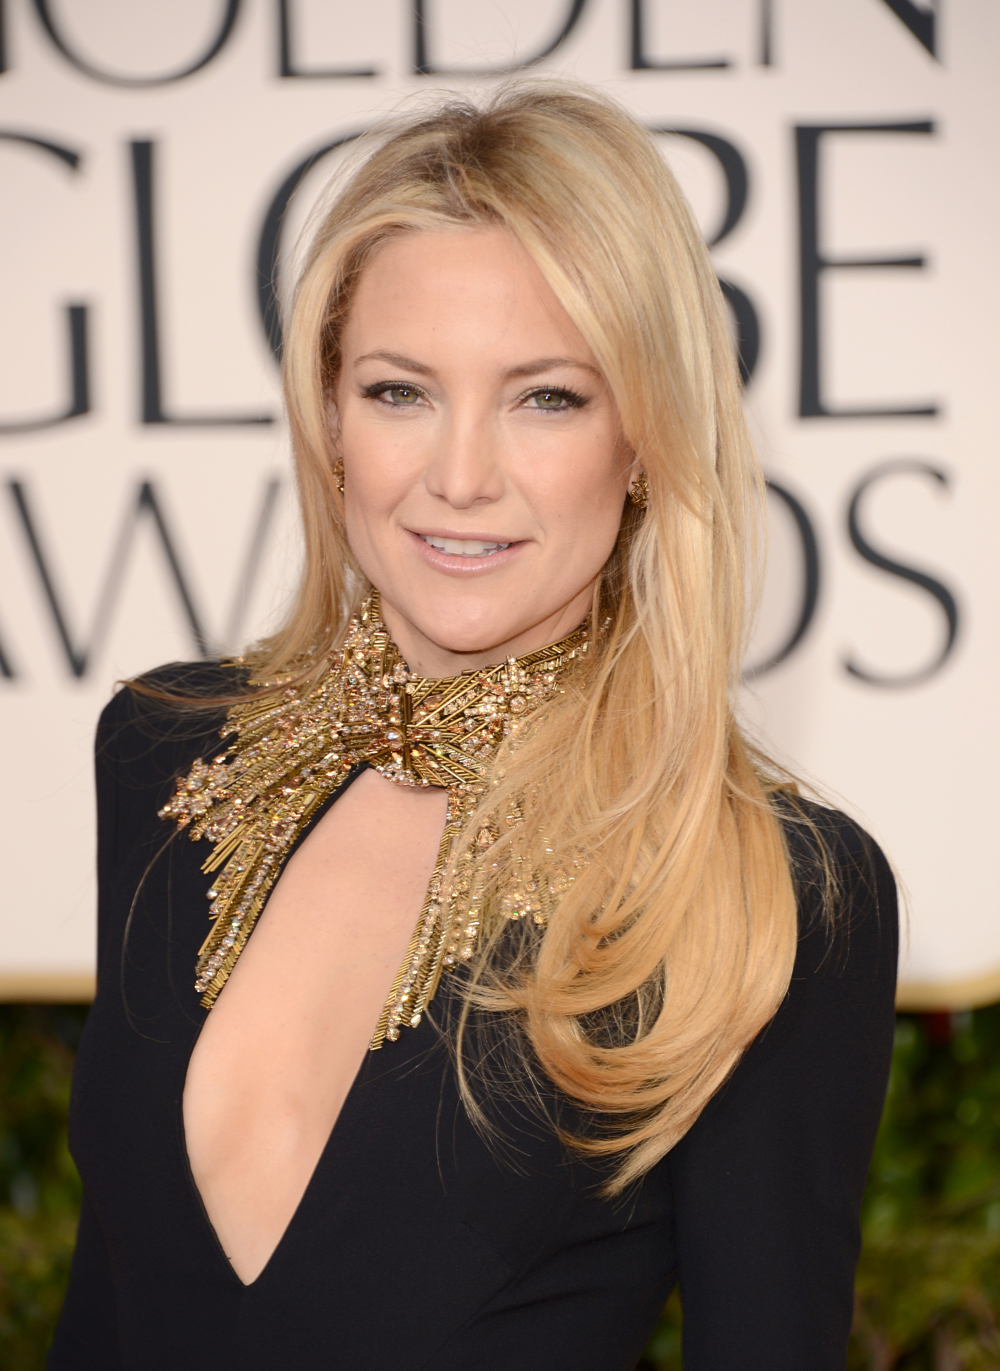 Kate Hudson's Hair at the 2013 Golden Globes